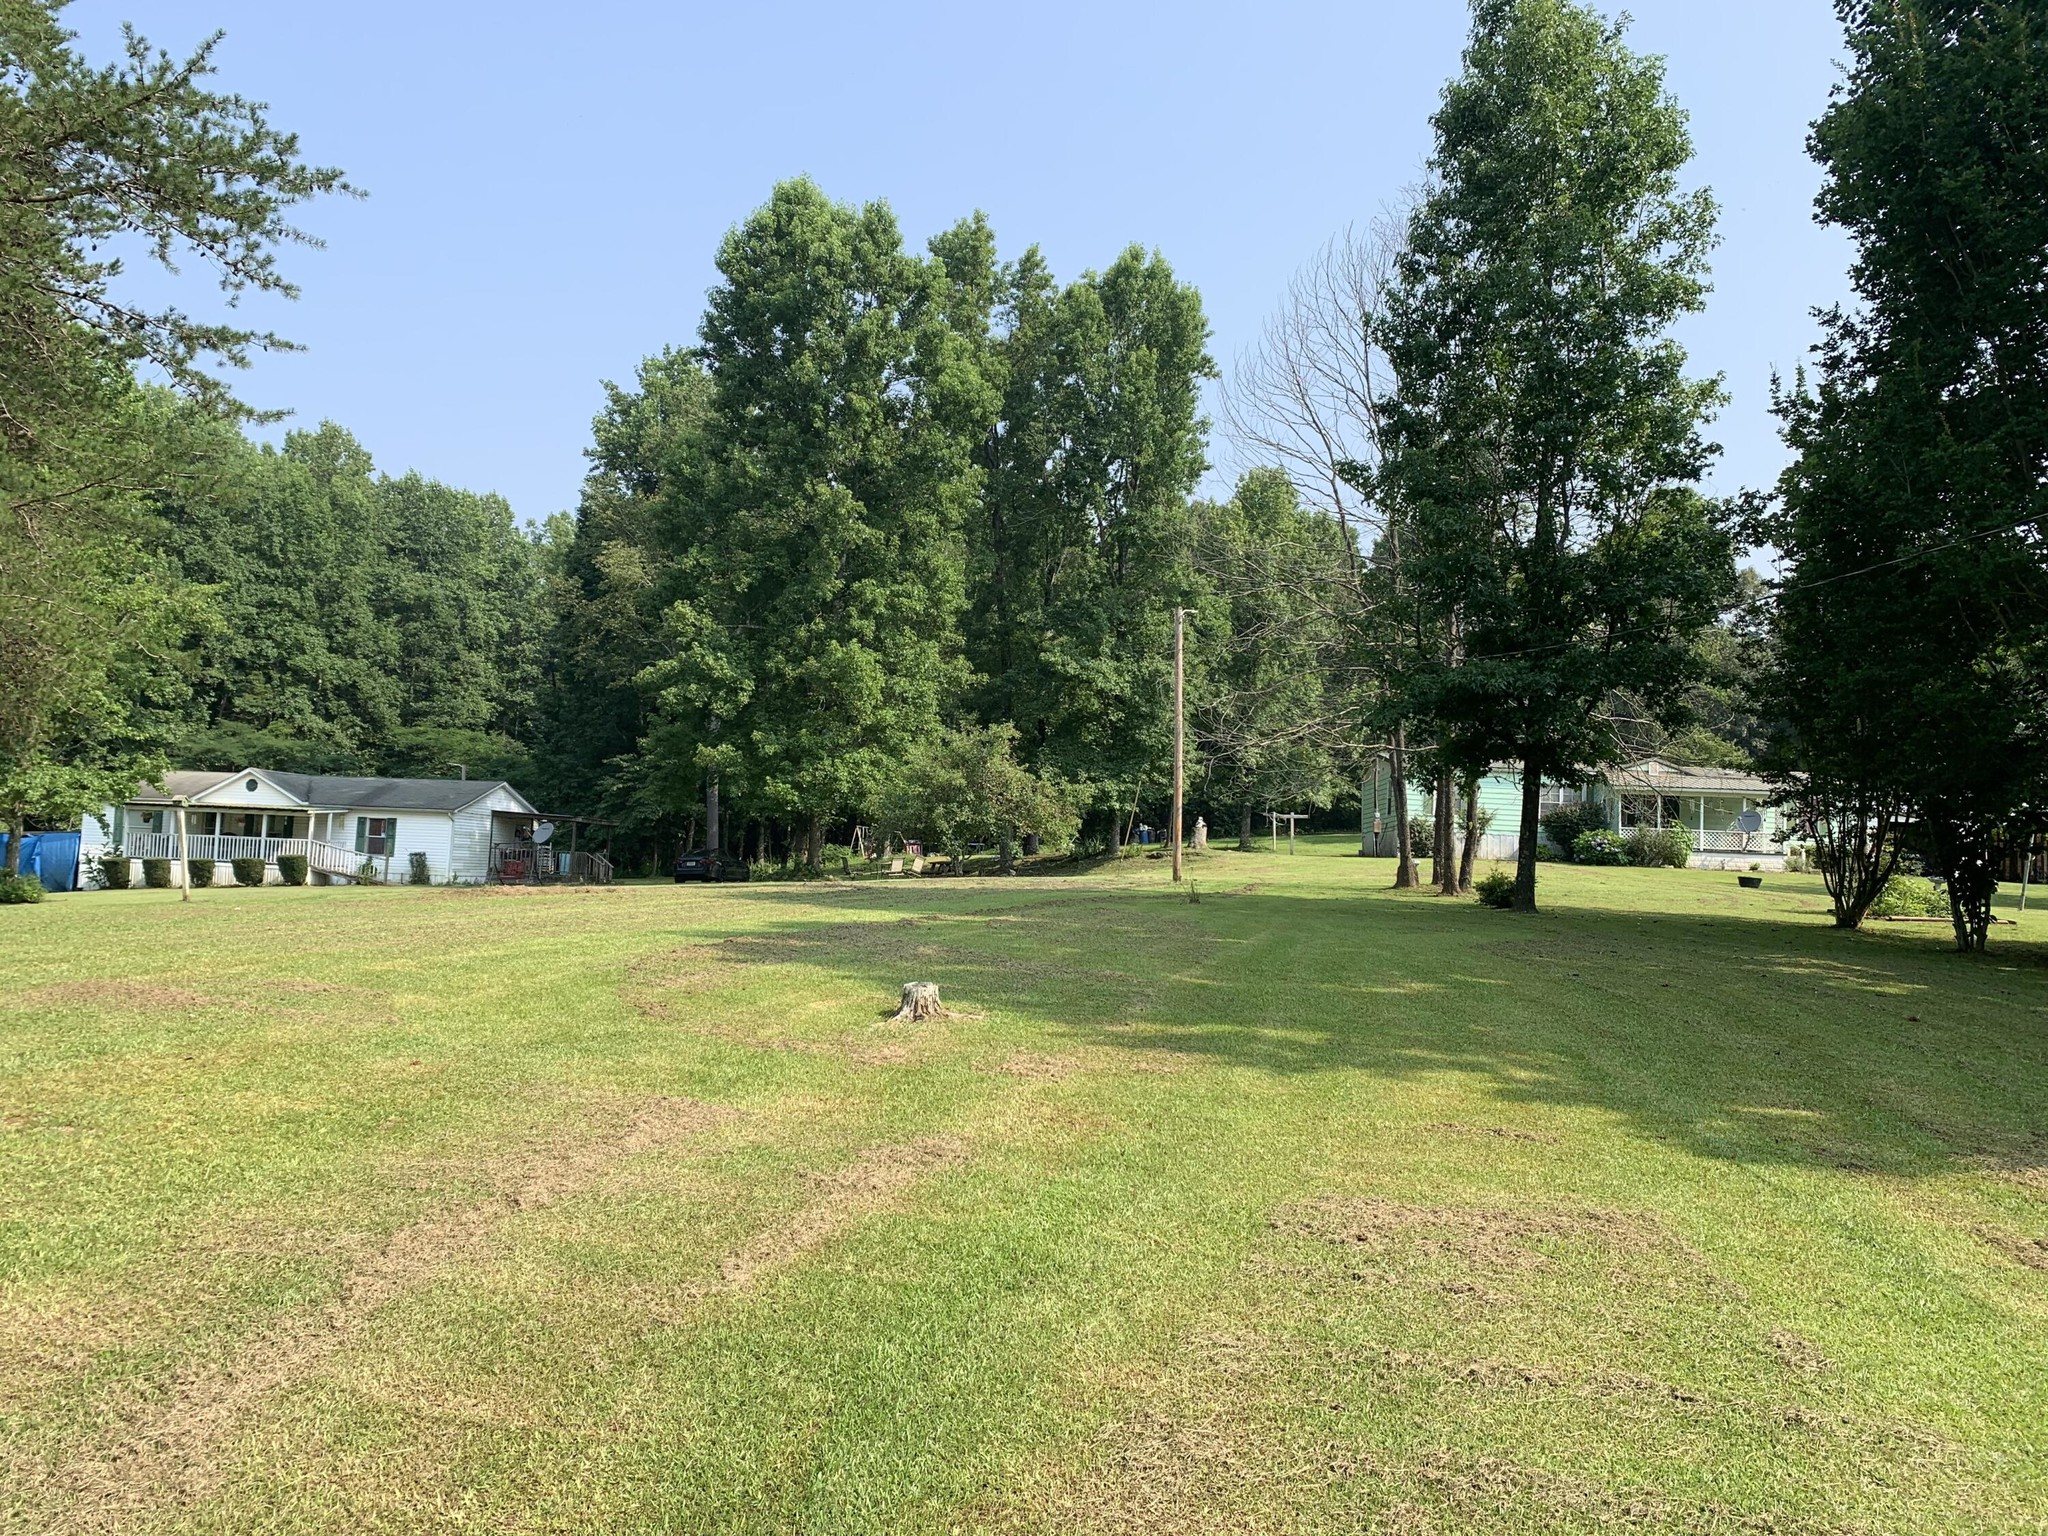 5-Bedroom House In Chickamauga